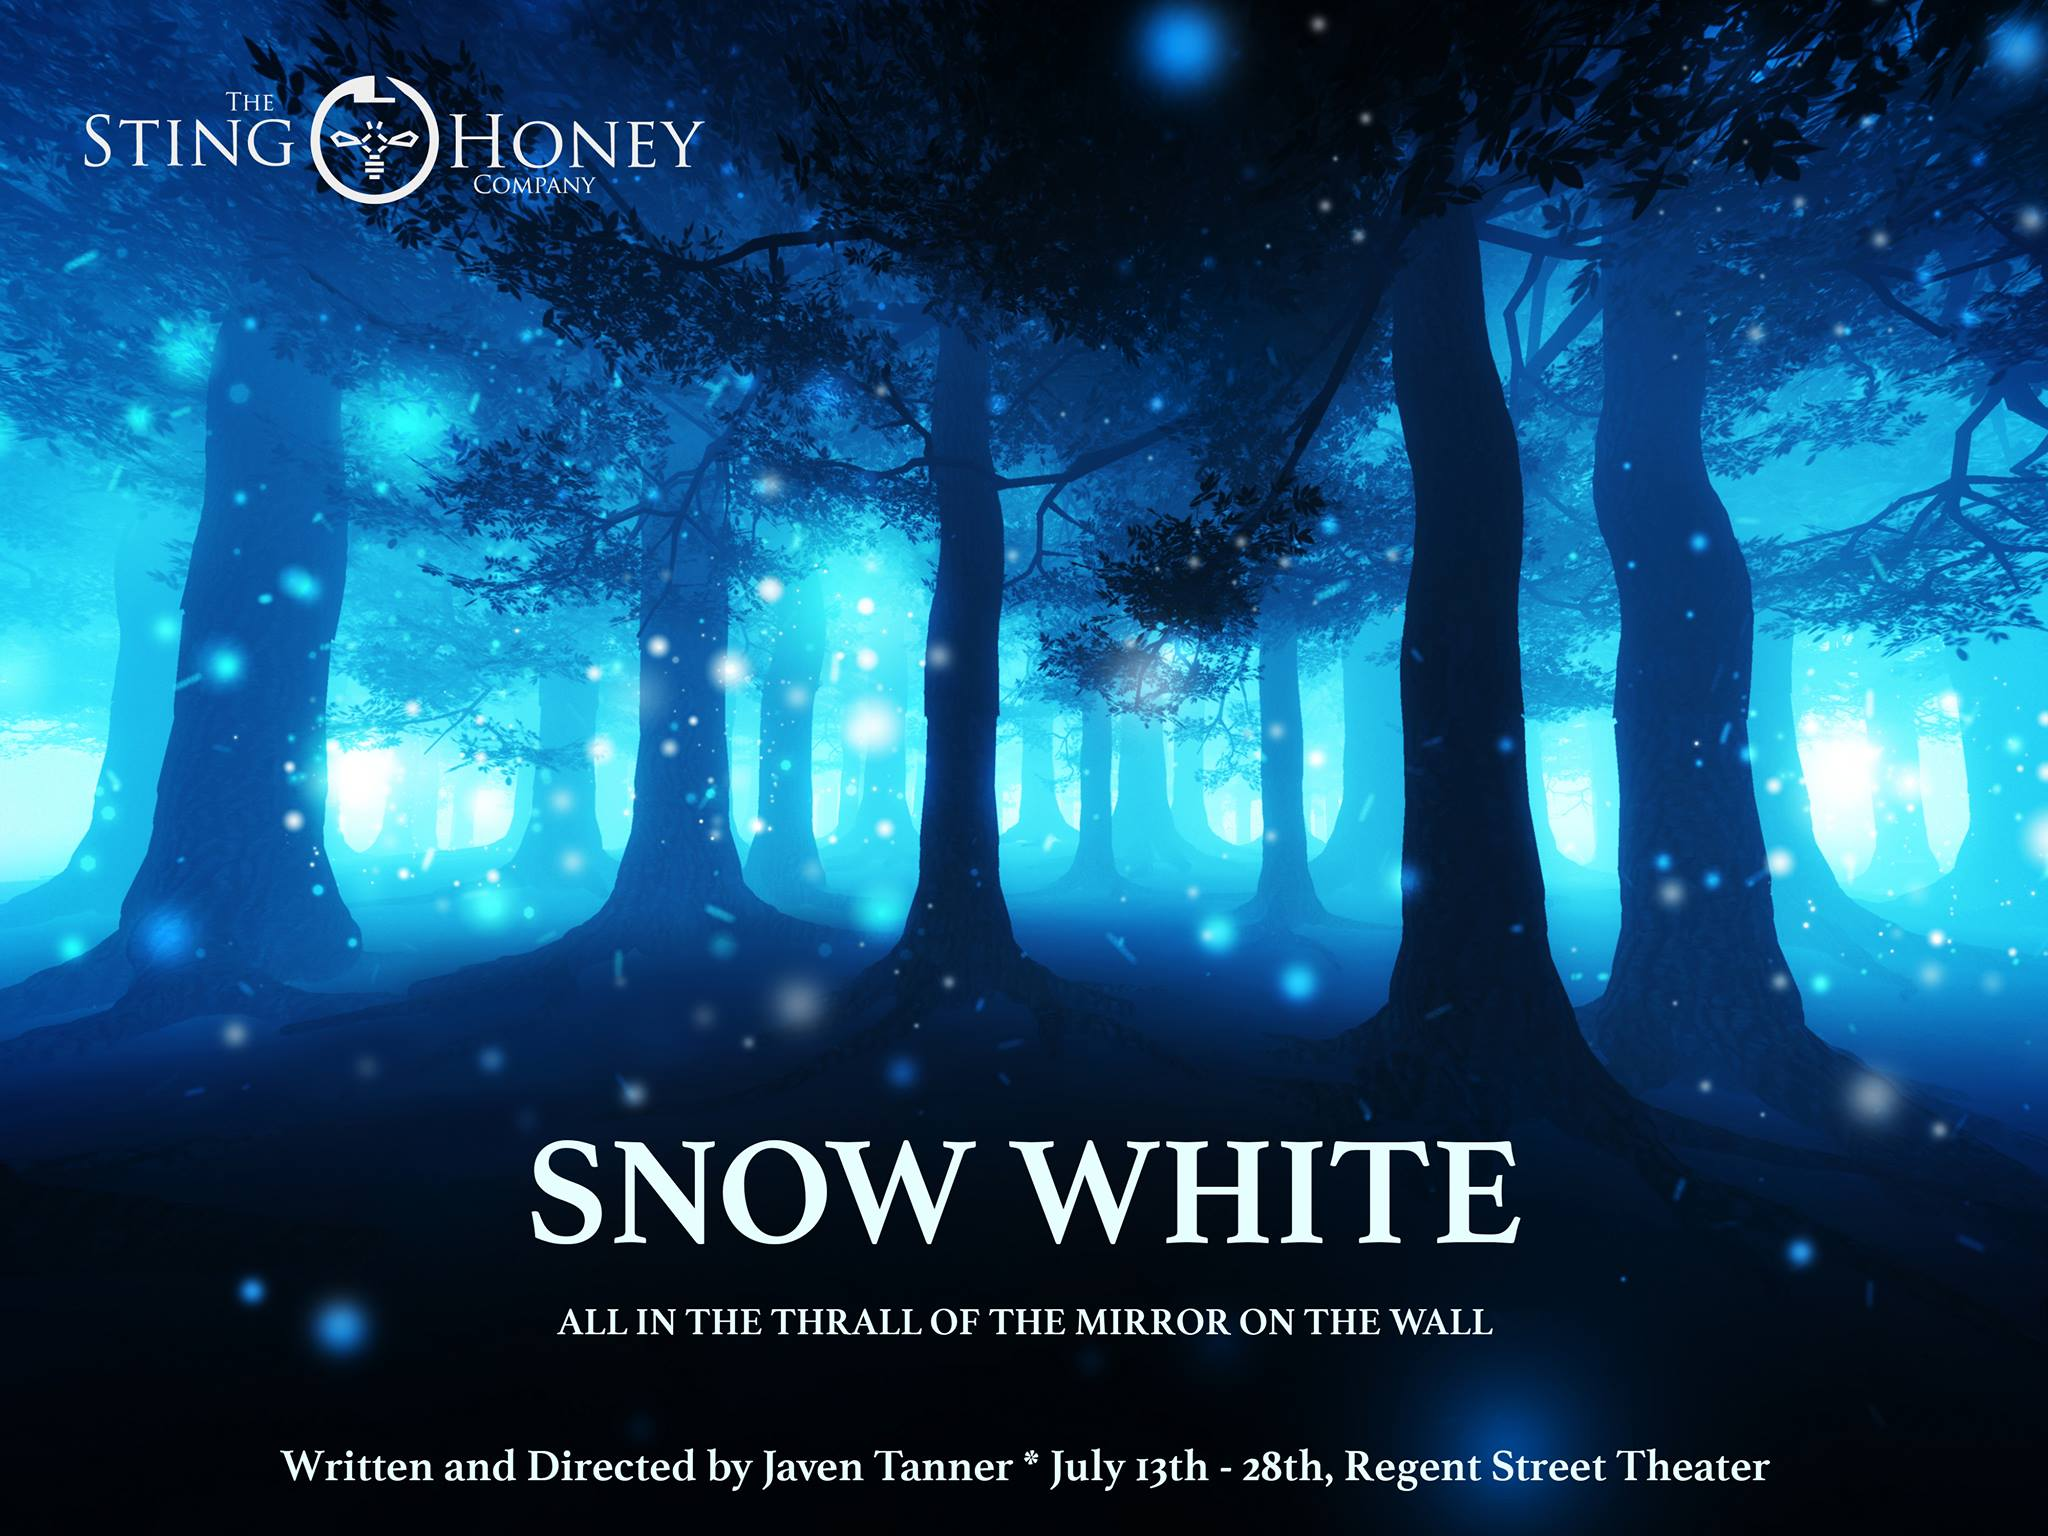 Return To Theatres Roots At The Sting Honey Companys Snow White